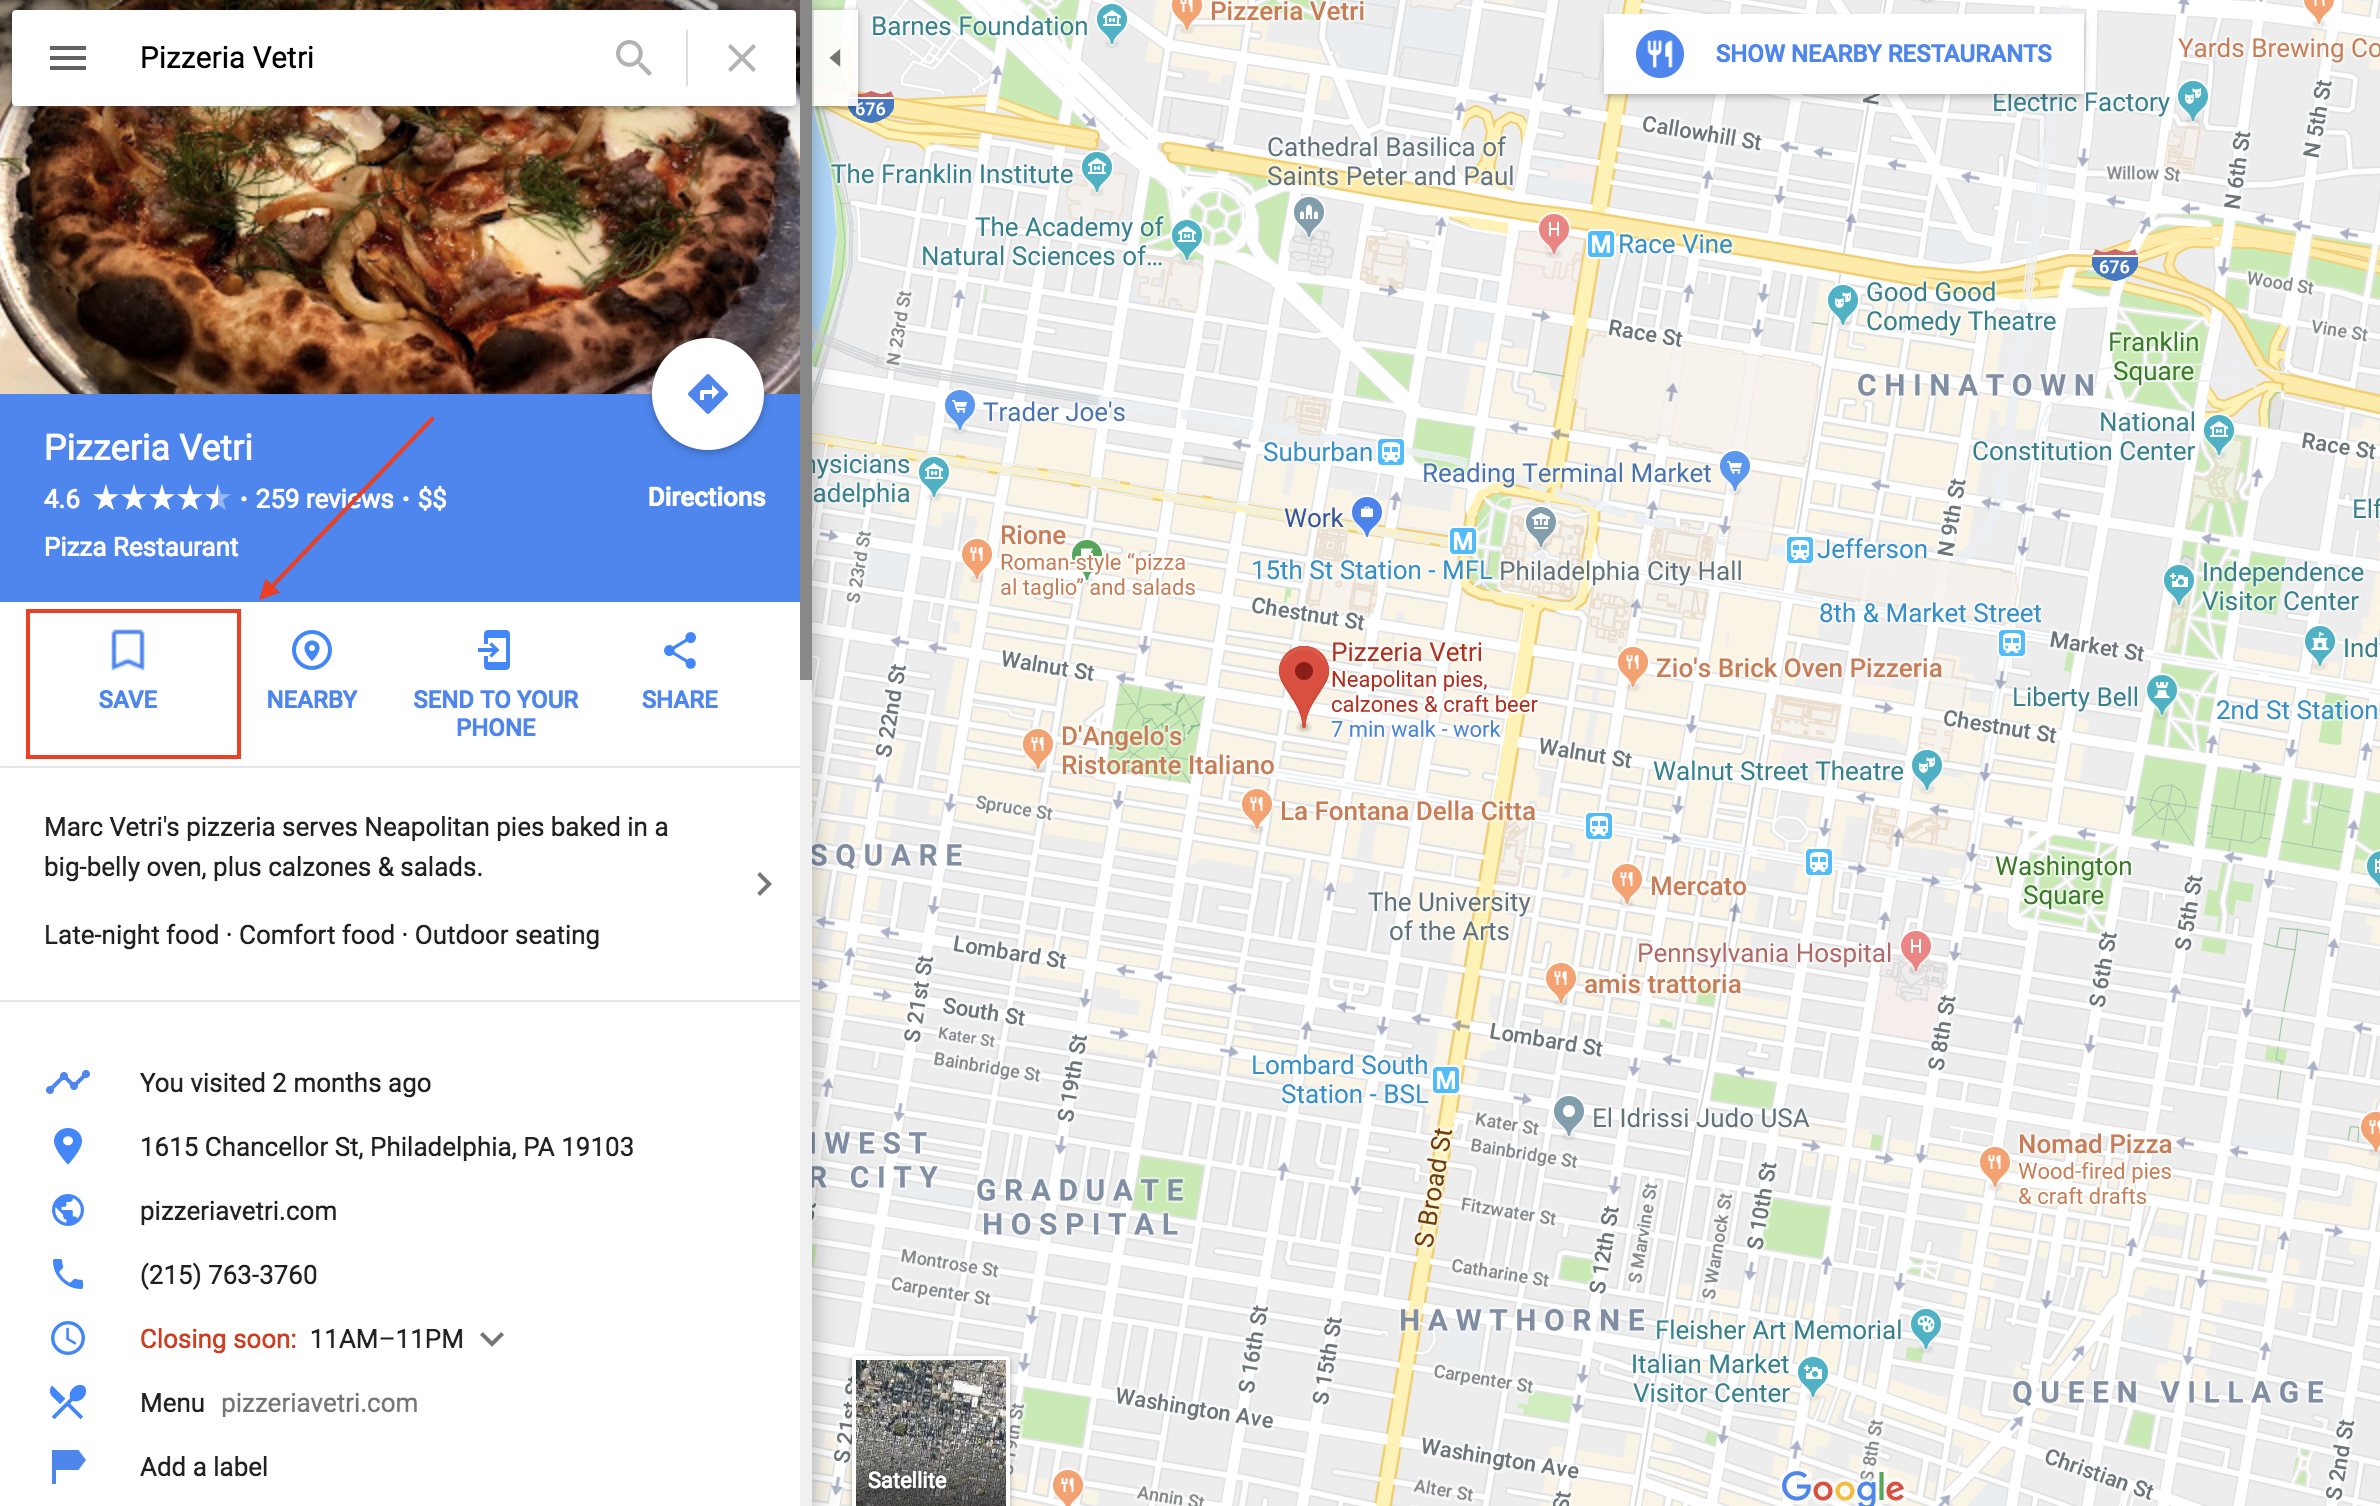 Save Pins of Your Favorite Places in Google Maps - And Be ... Good Google Maps on googie maps, iphone maps, search maps, gppgle maps, goolge maps, online maps, android maps, amazon fire phone maps, aerial maps, waze maps, googlr maps, bing maps, microsoft maps, msn maps, gogole maps, stanford university maps, topographic maps, road map usa states maps, ipad maps, aeronautical maps,